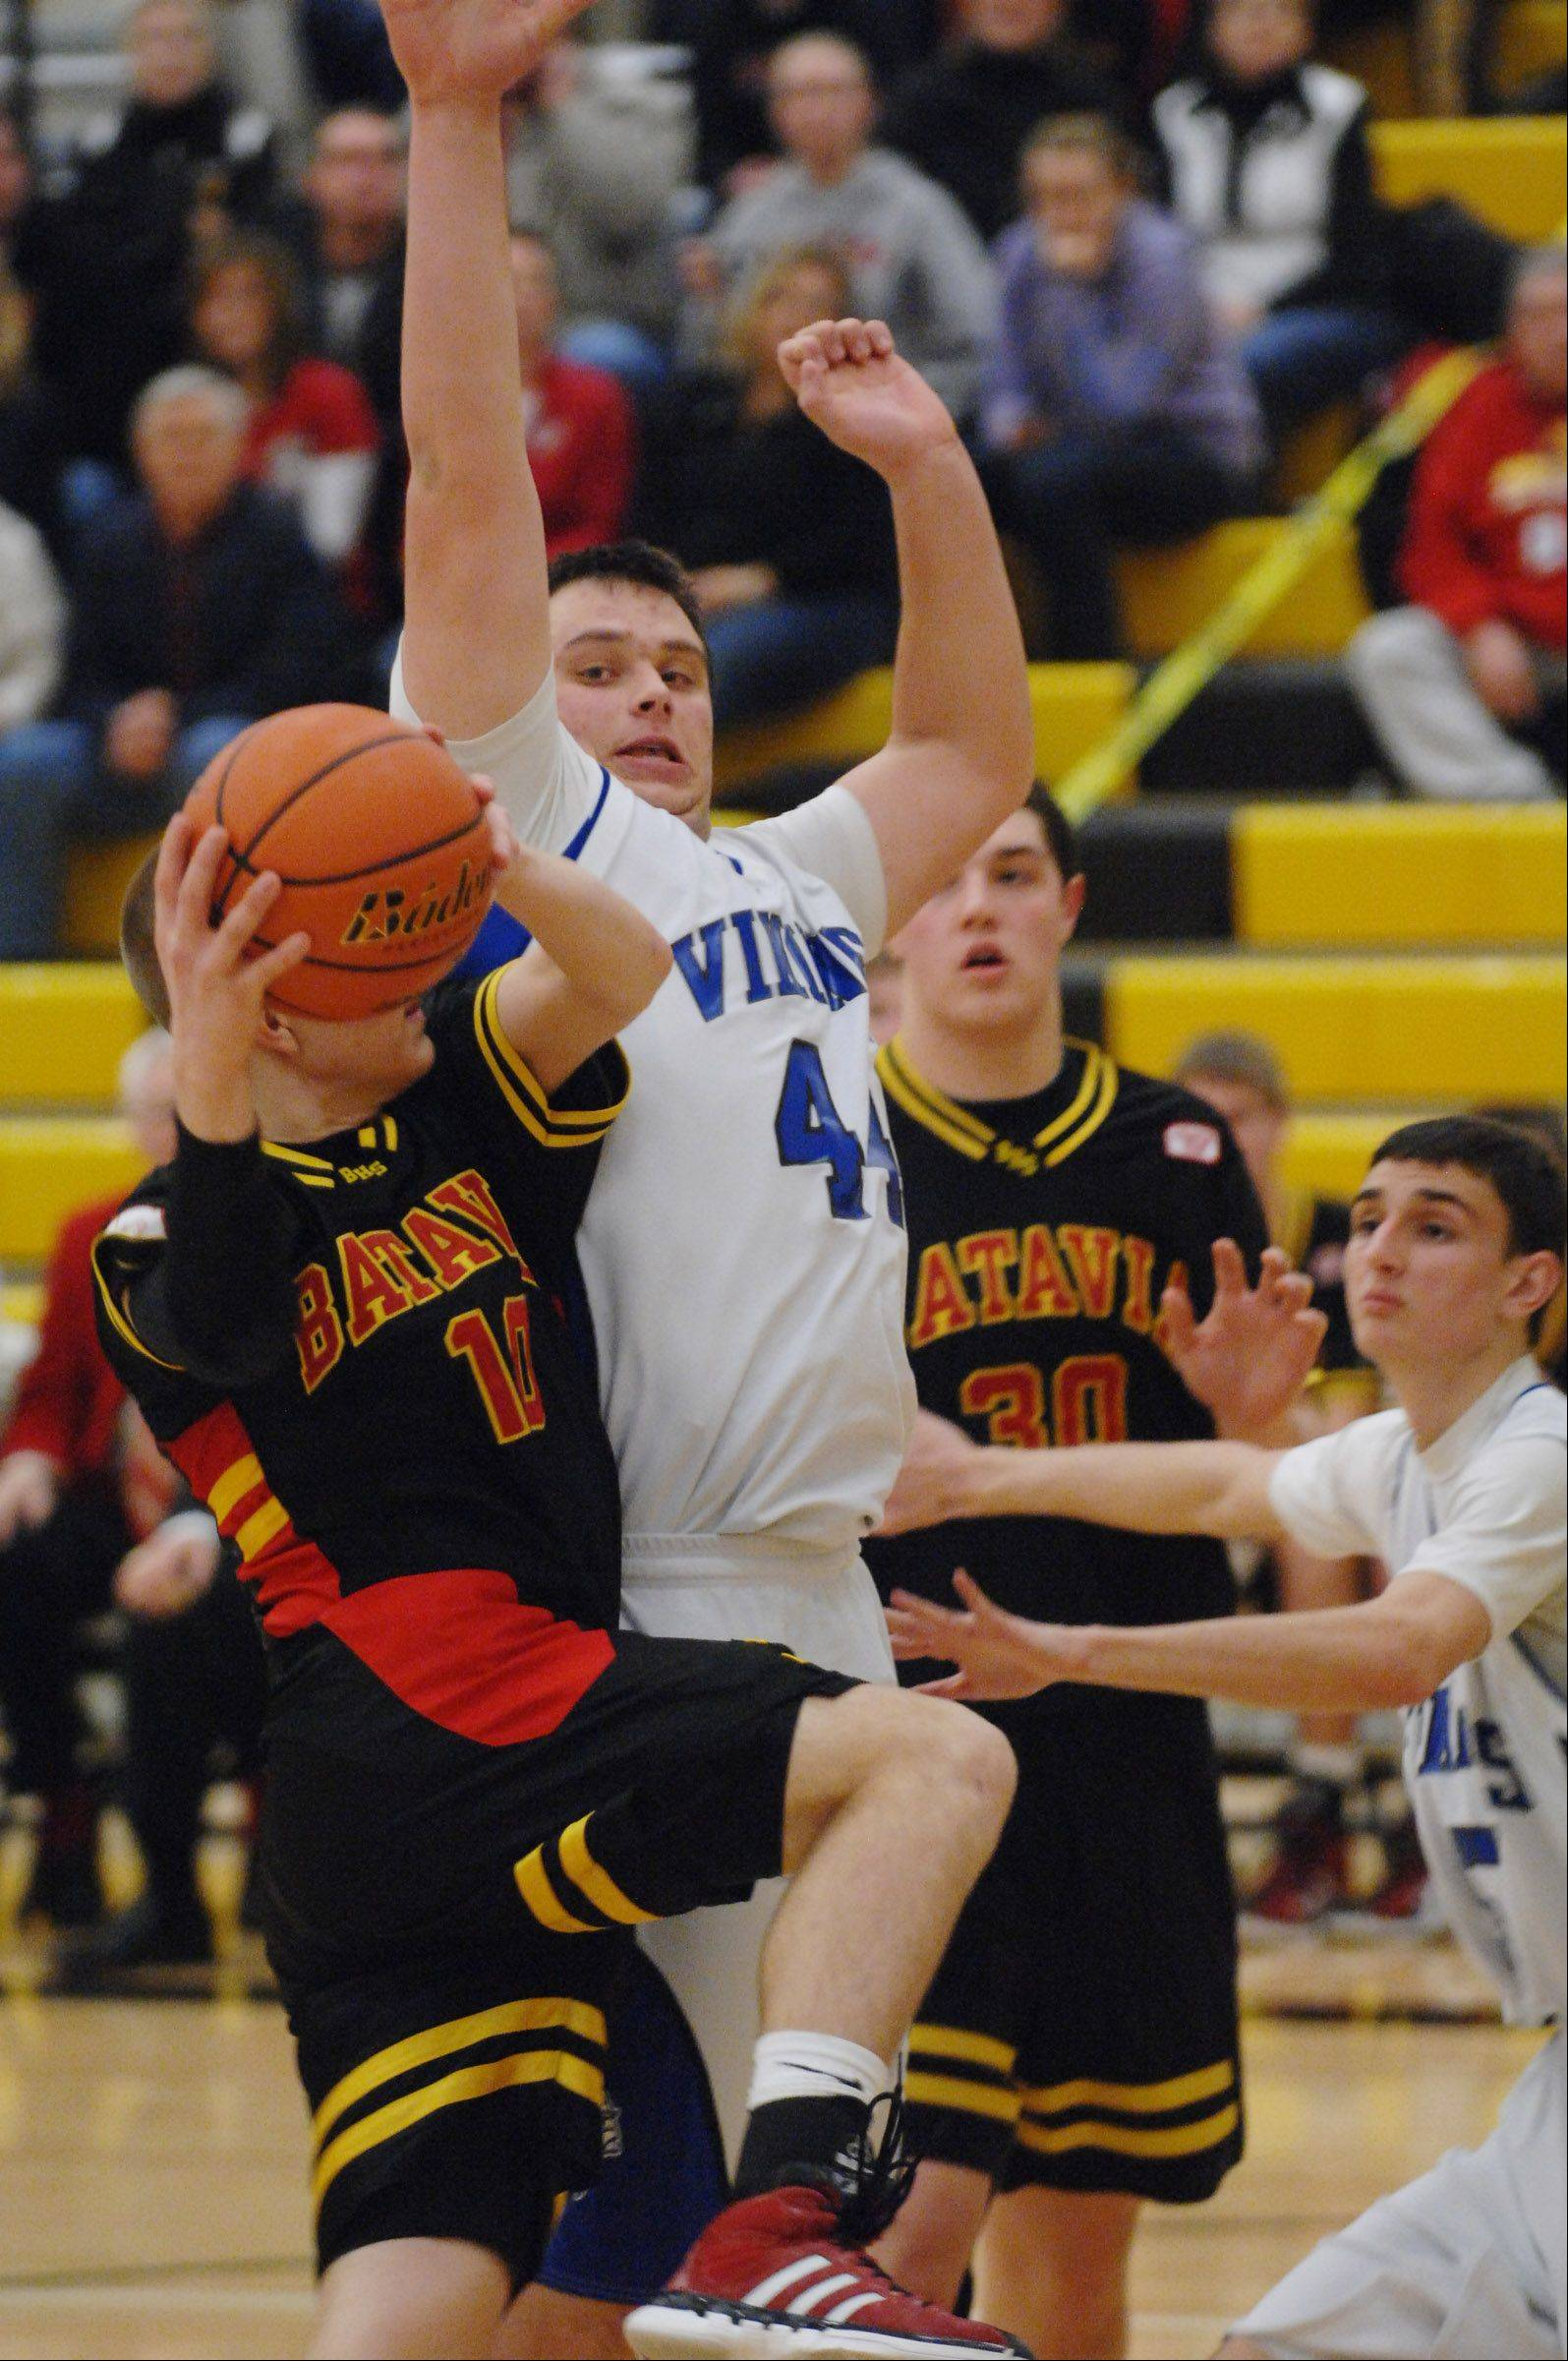 Geneva's Connor Chapman defends and fouls Batavia's Mike Rueffer at the Metea Valley regional game Monday.